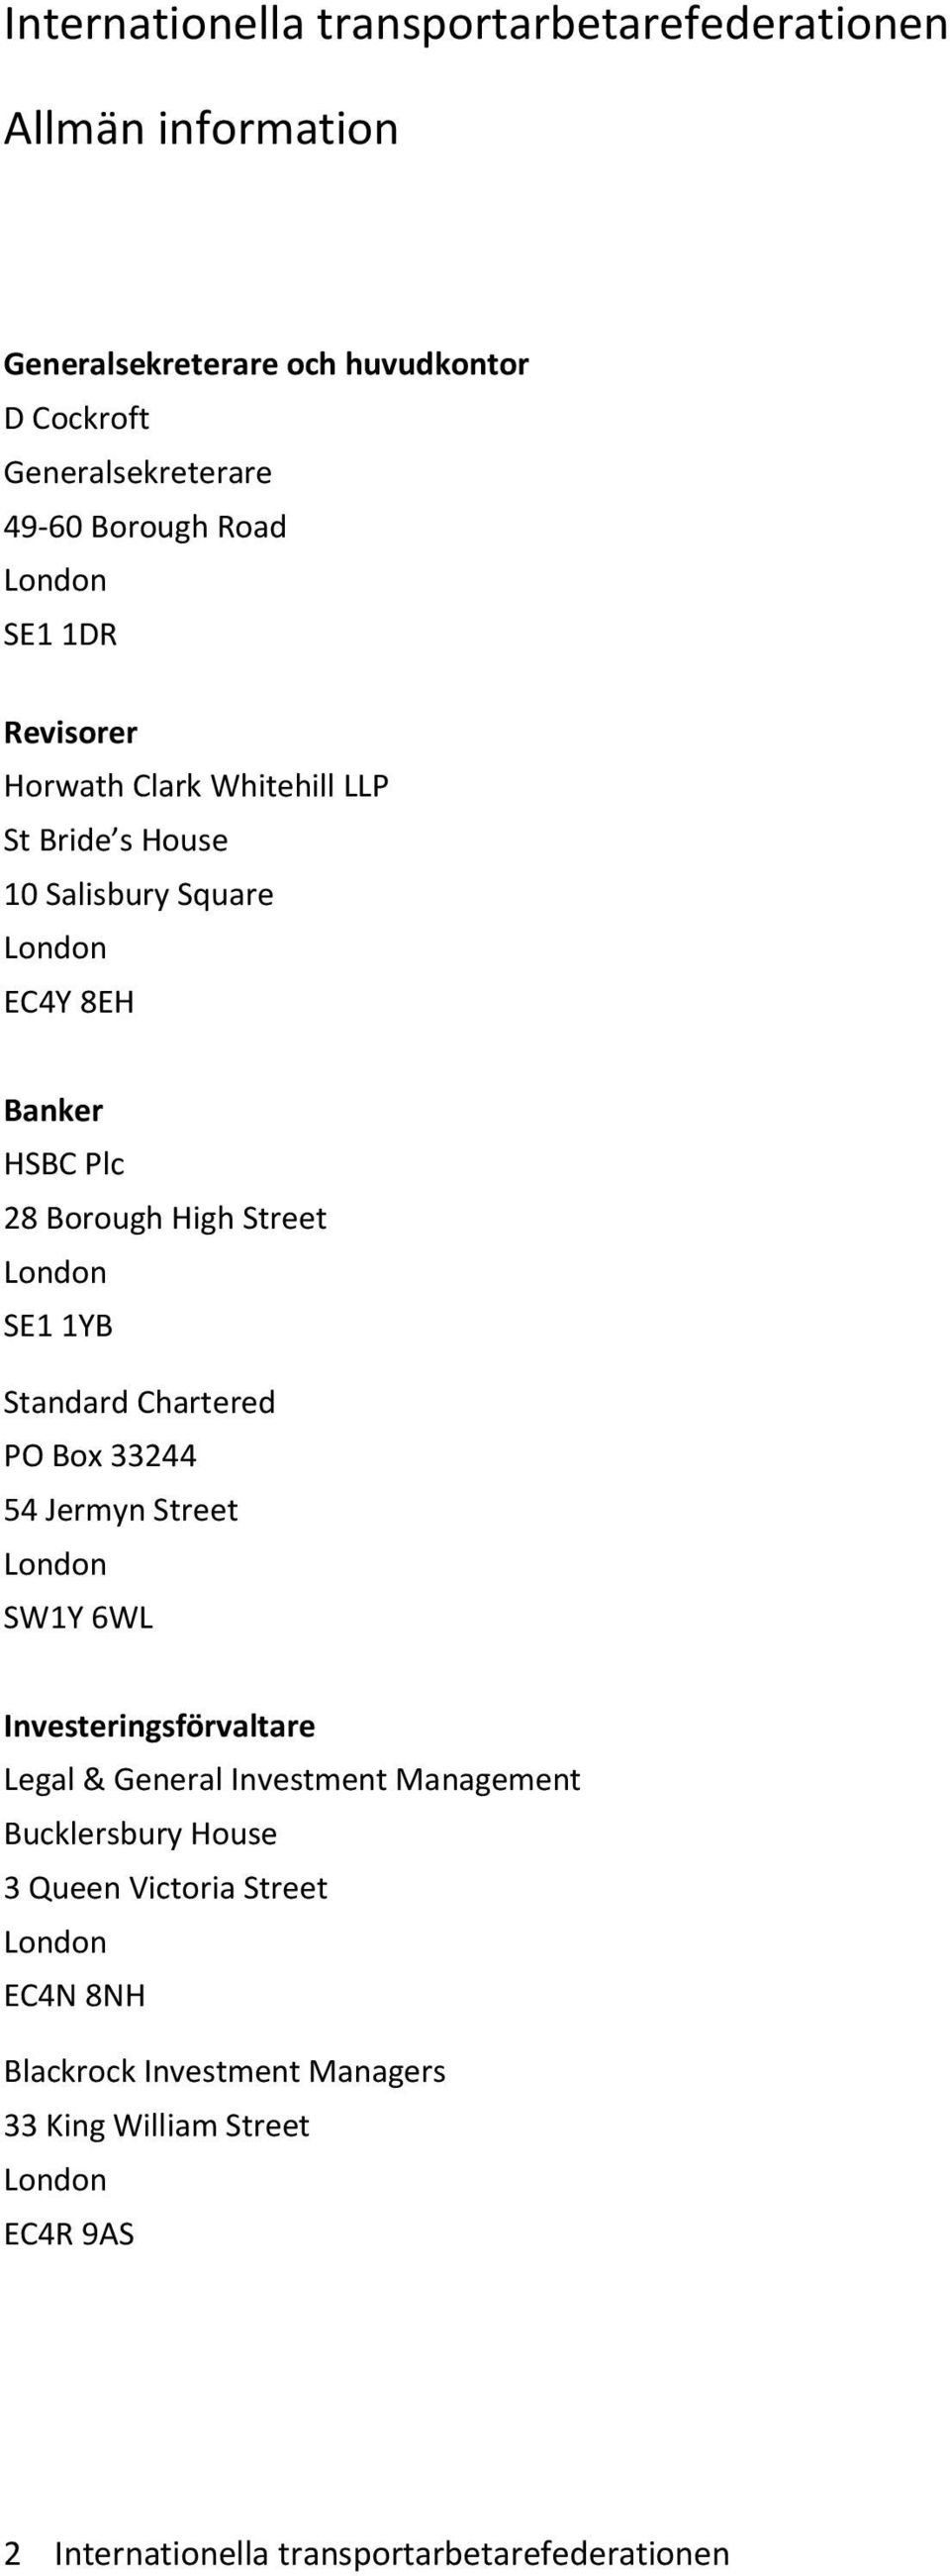 SE1 1YB Standard Chartered PO Box 33244 54 Jermyn Street London SW1Y 6WL Investeringsförvaltare Legal & General Investment Management Bucklersbury House